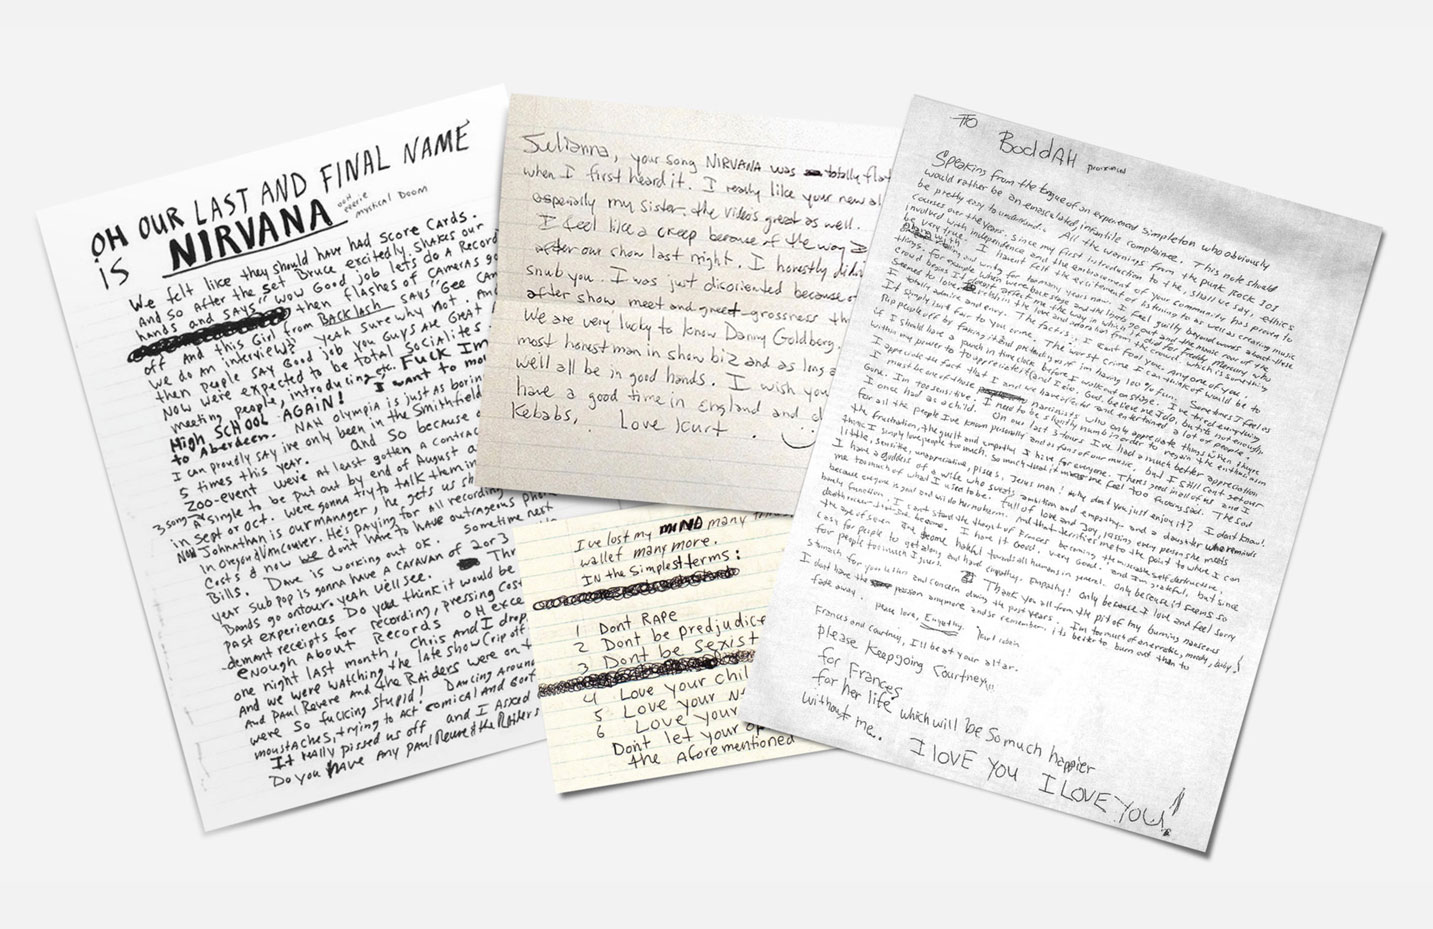 The words of Kurt Cobain including his suicide note, right